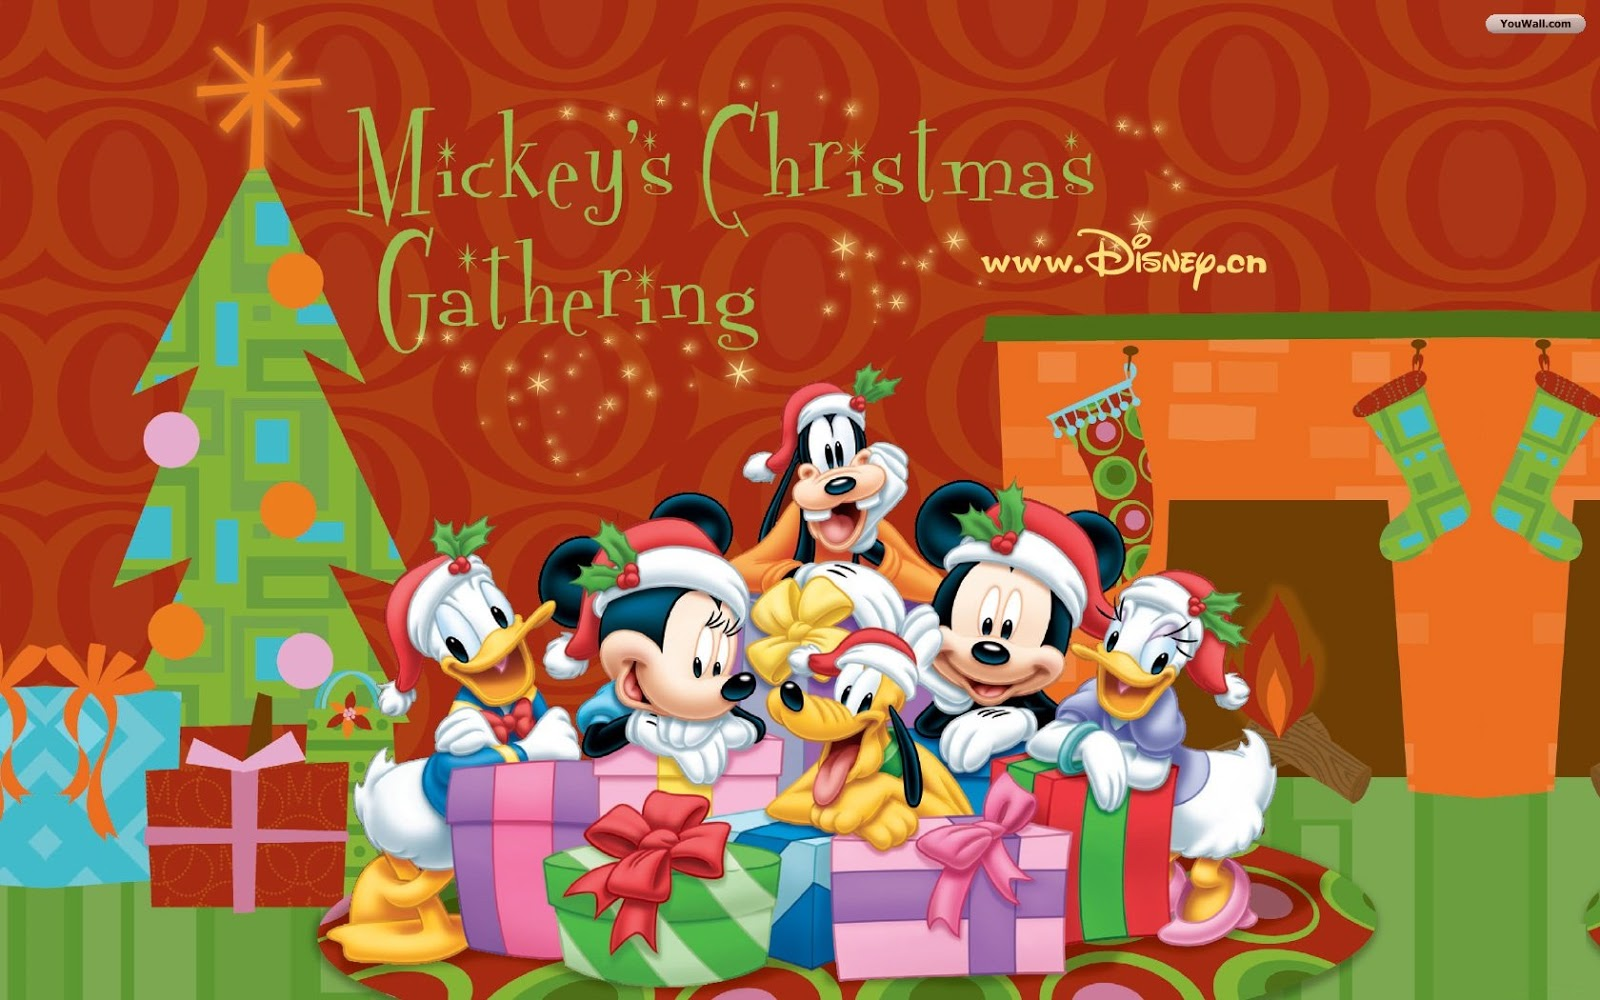 Walt Disney Christmas Wallpaper.50 Christmas Disney Screensaver Wallpaper On Wallpapersafari